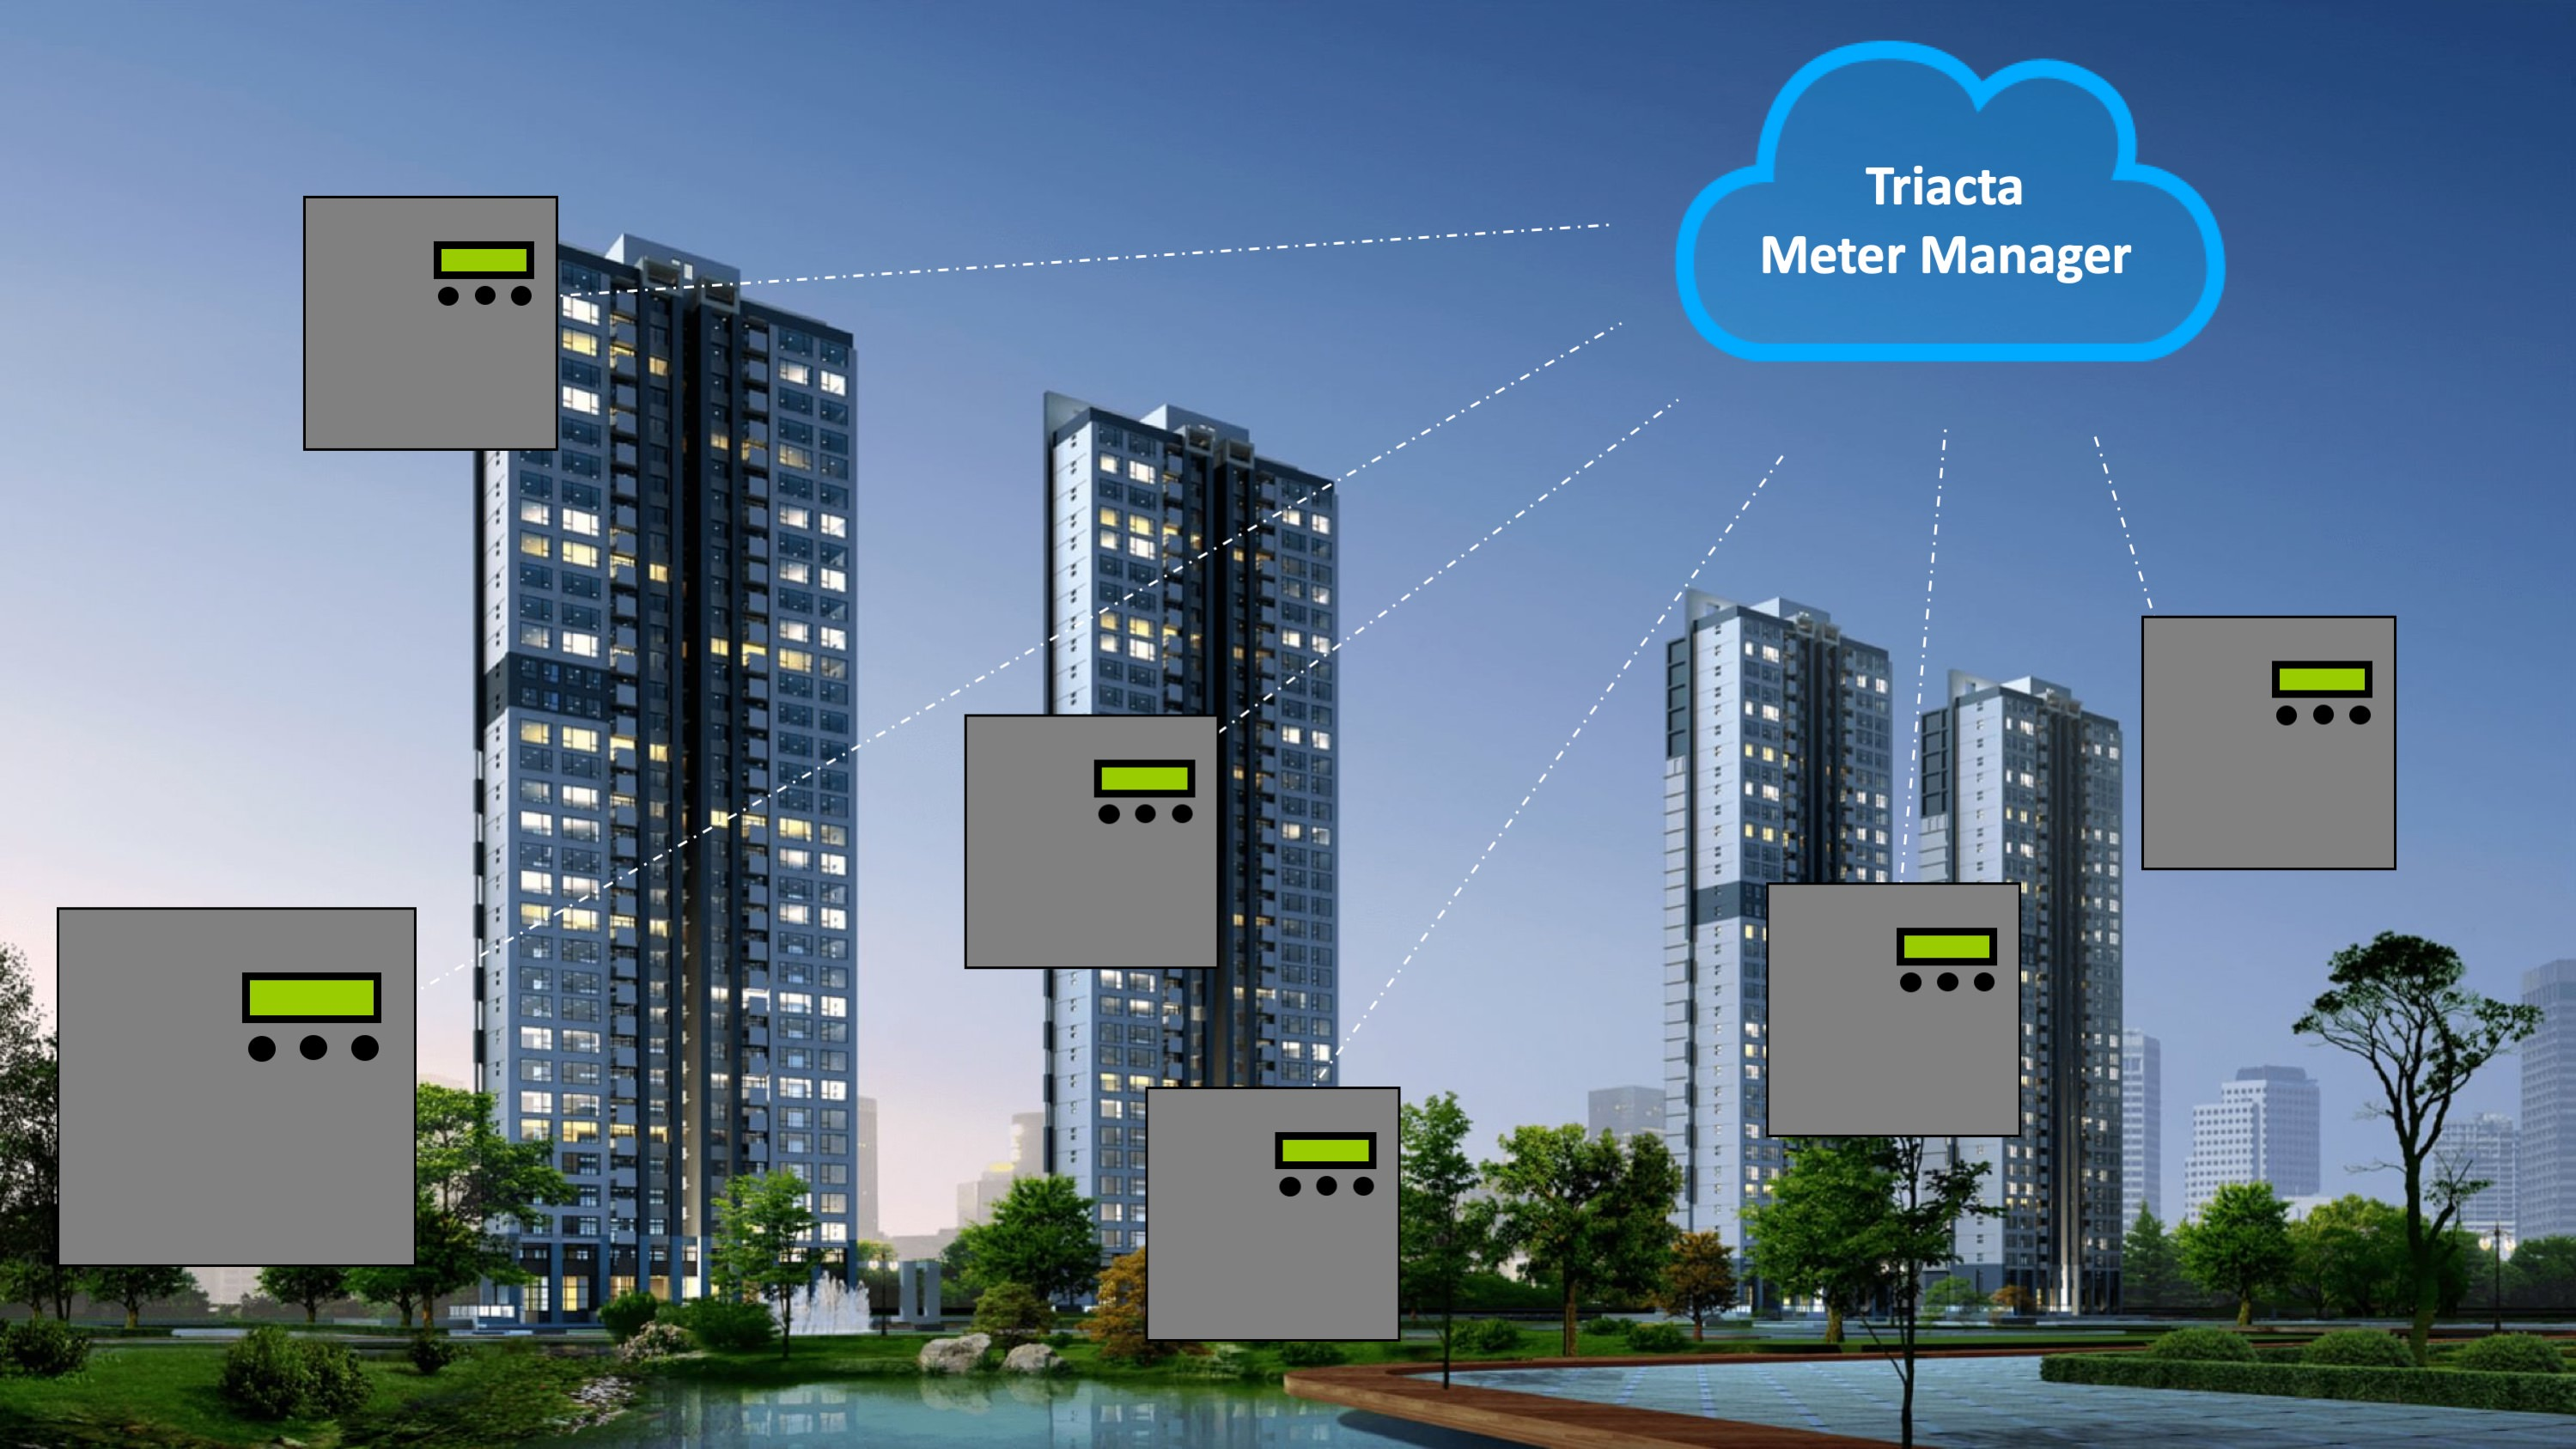 Integrated Electrical Meter Network that spans across several multiunit buildings — integrated through cloud-based meter manager technology